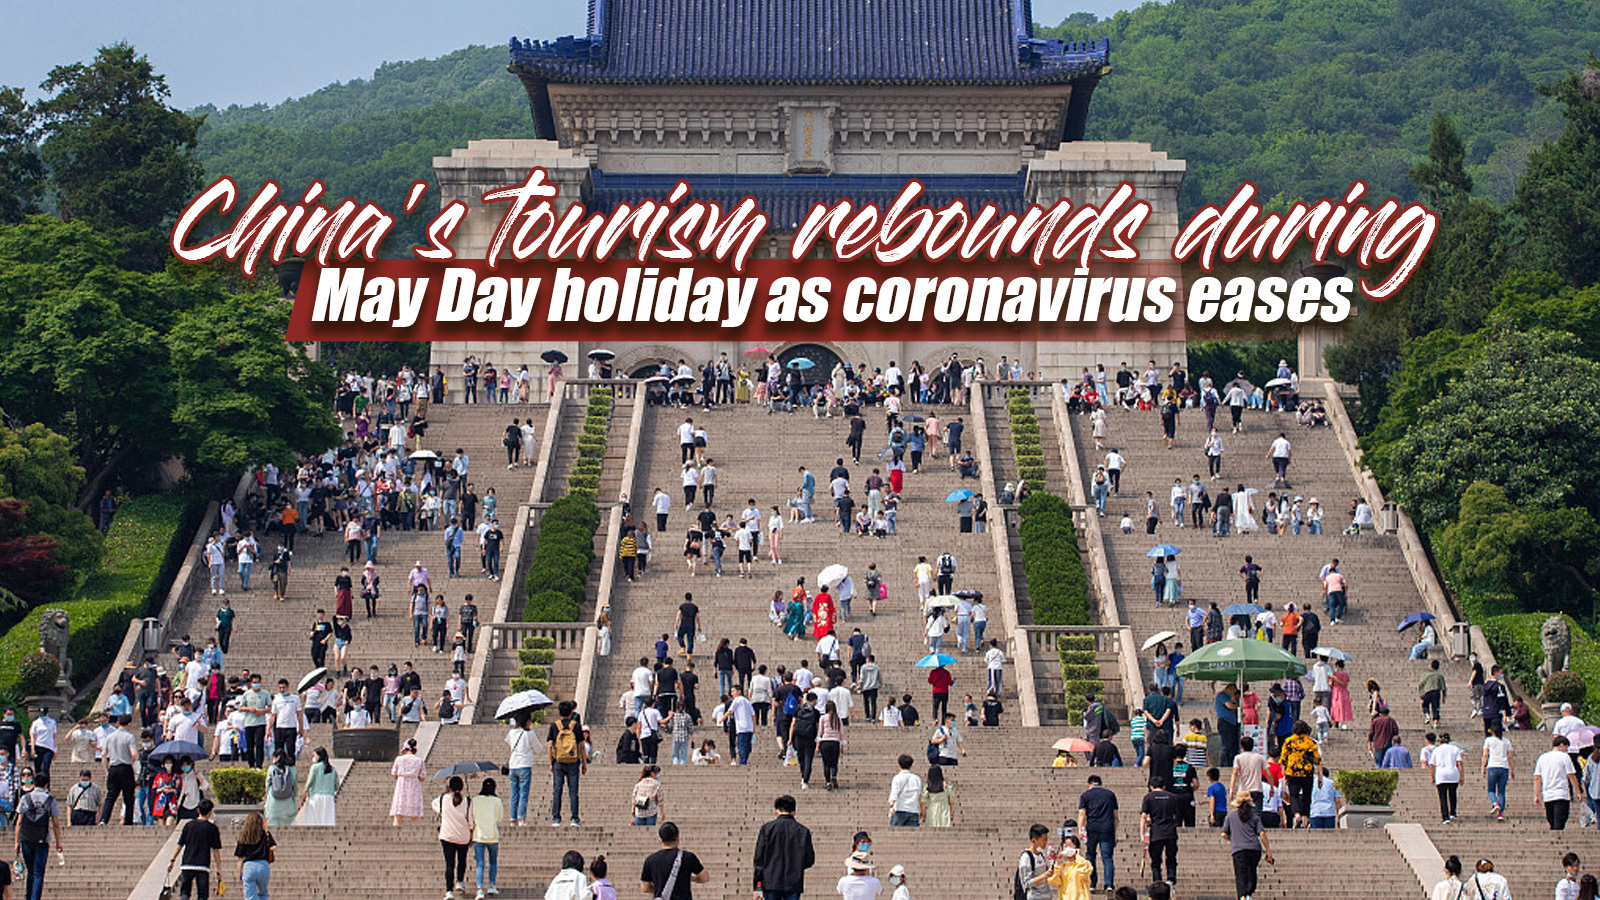 China's tourism rebounds during May Day holiday as coronavirus eases